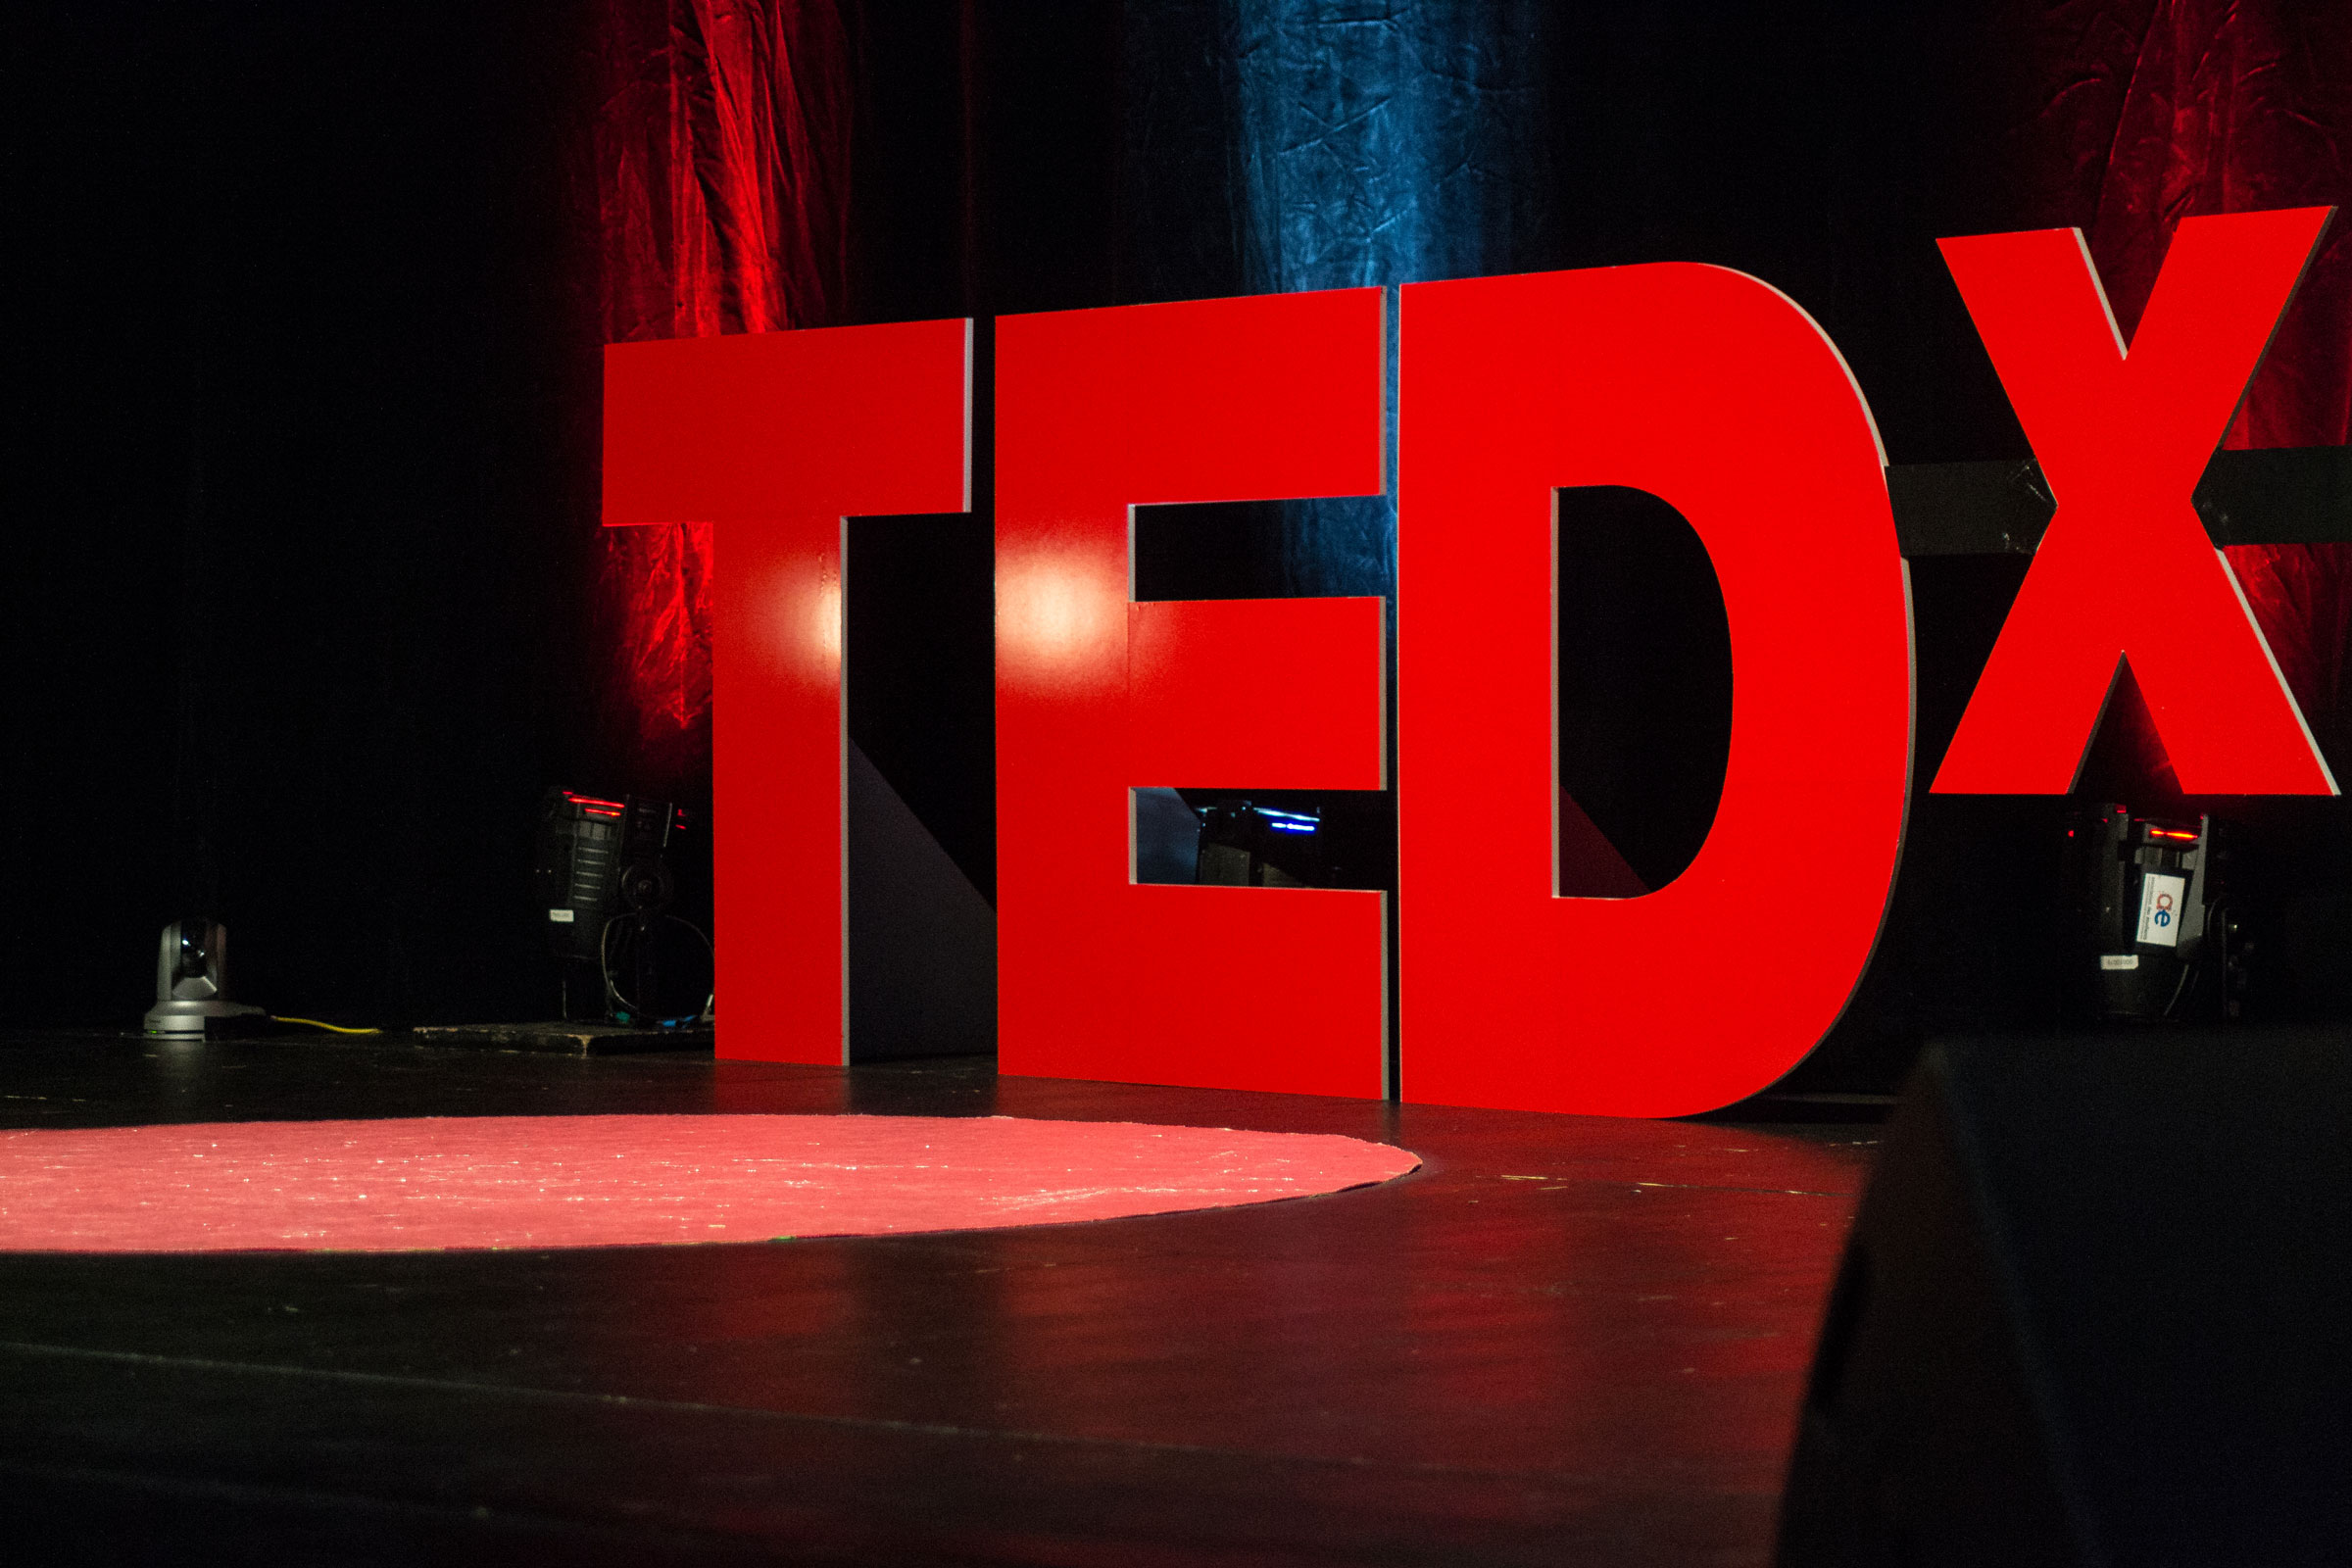 Des TED Talk féminins inspirants